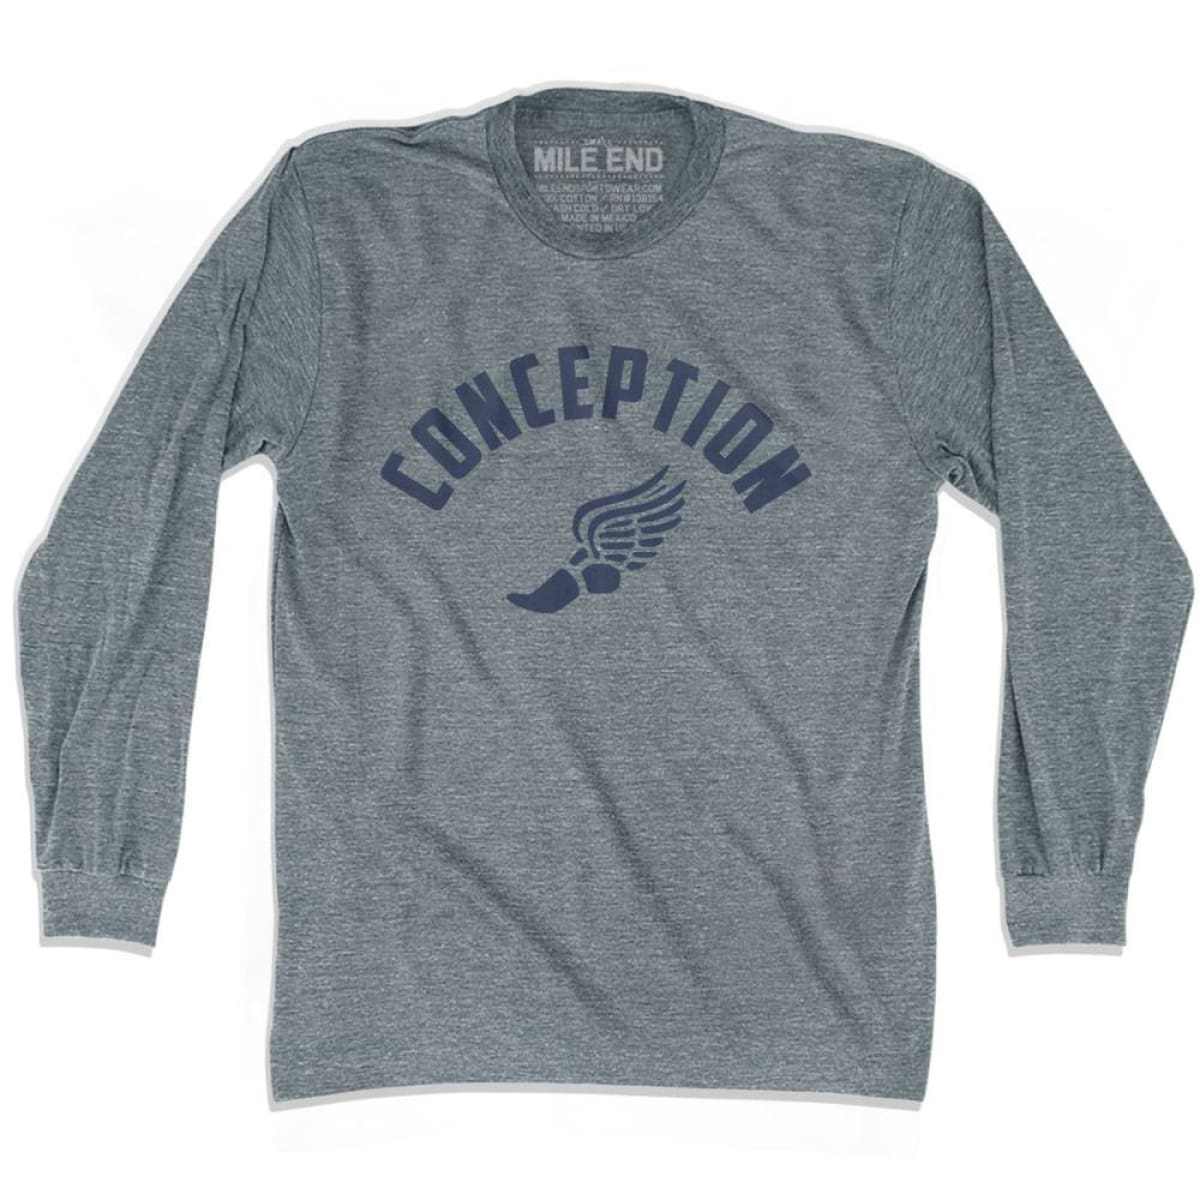 Conception Track Long Sleeve T-shirt - Athletic Grey / Adult X-Small - Mile End Track